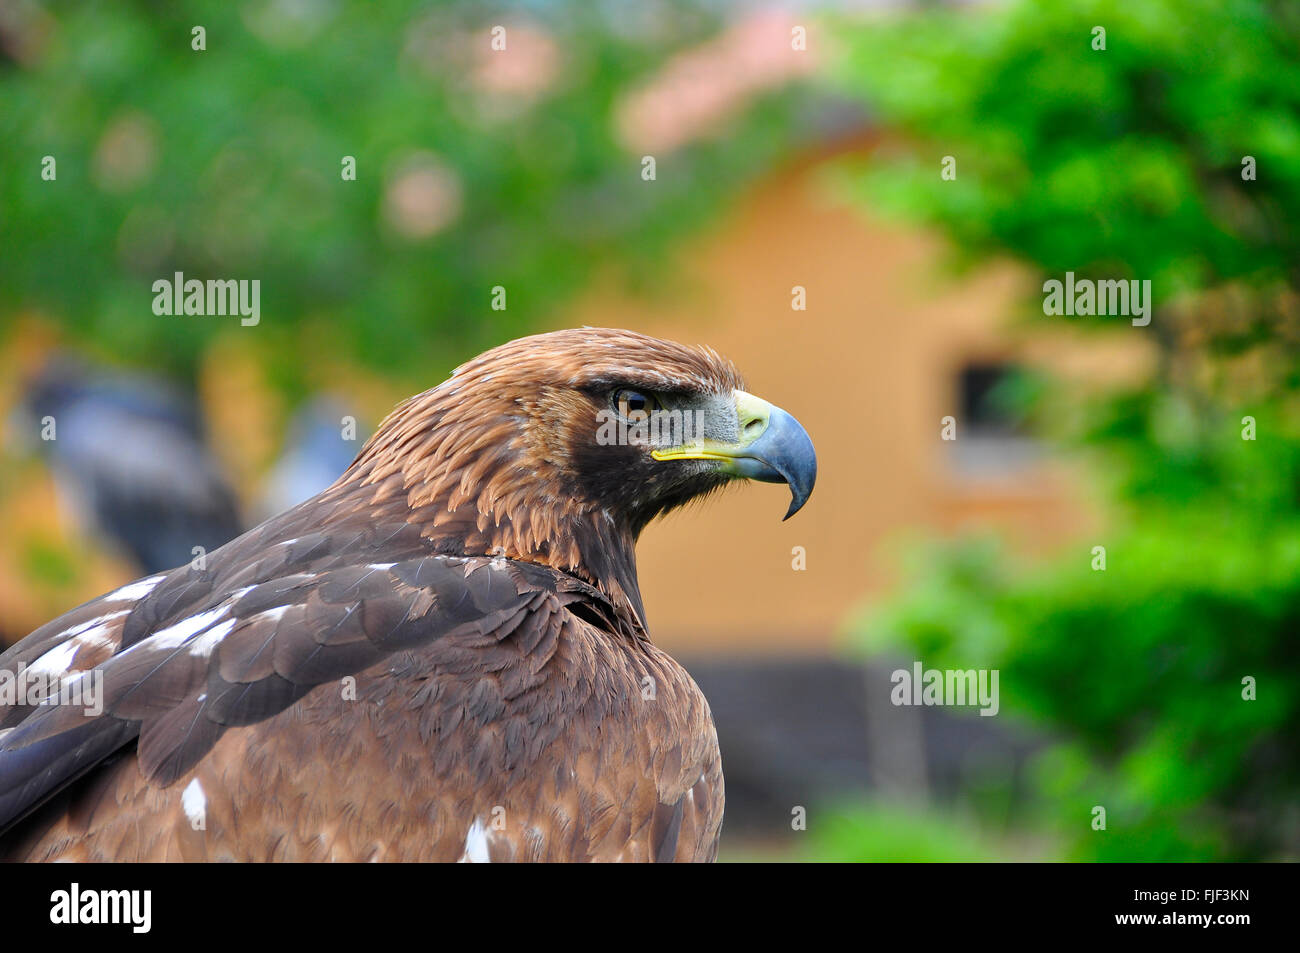 Beautiful hawk staring at the camera in an exhibition of falconry - Stock Image